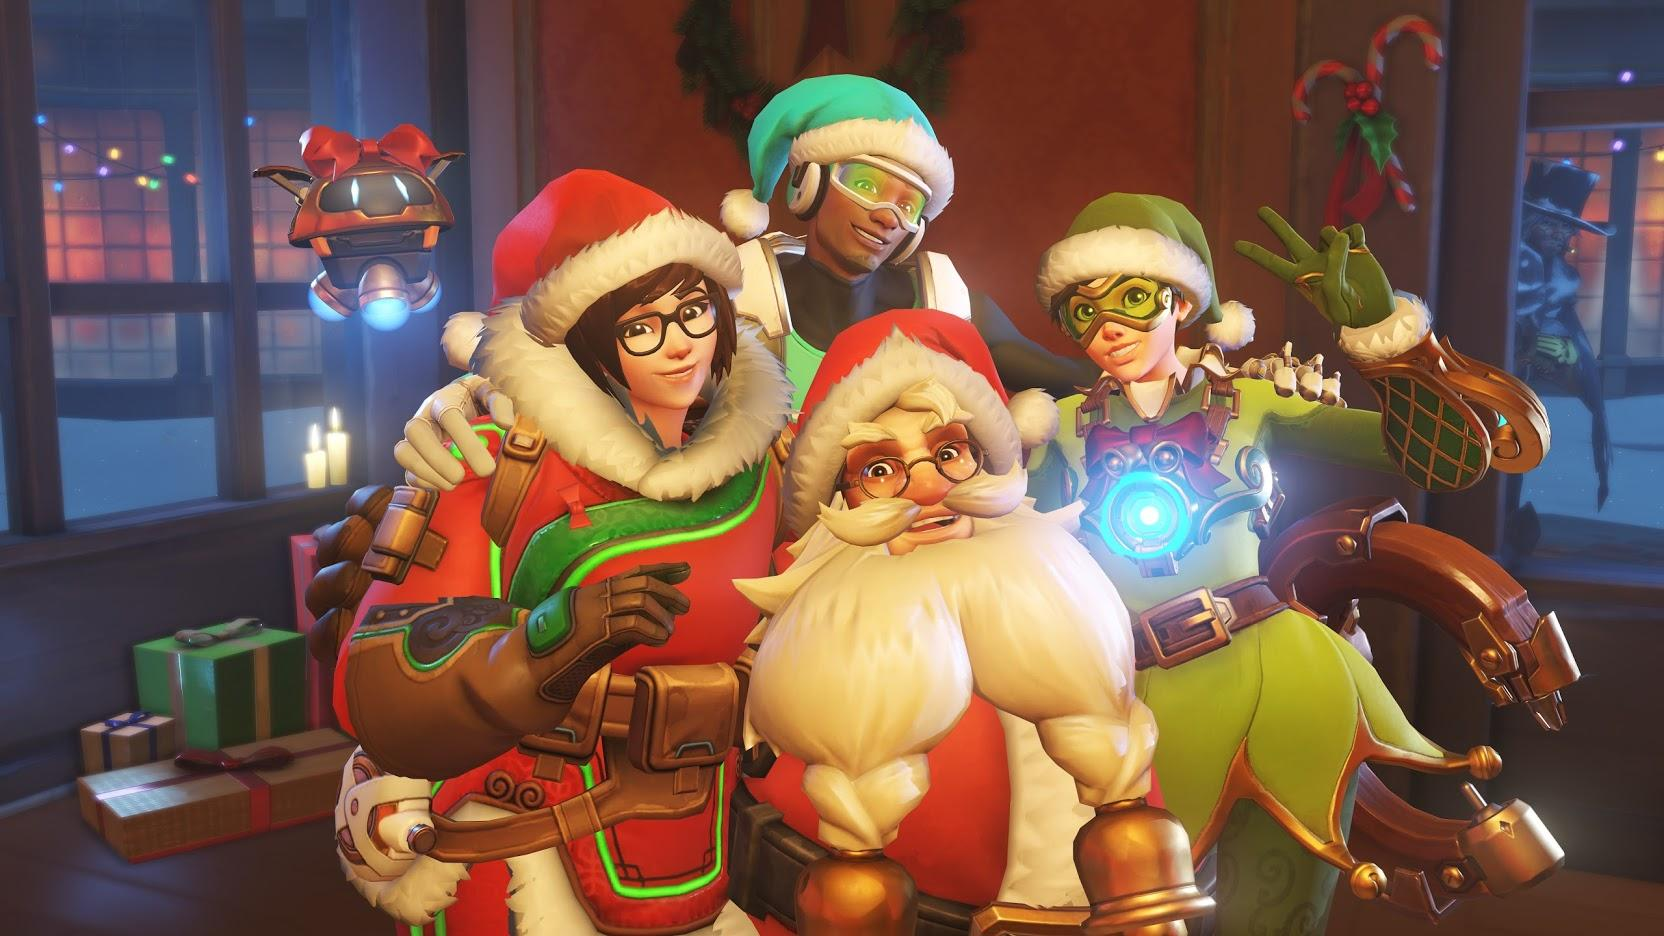 Overwatch's holiday event returns next week with new Mei-focused mode